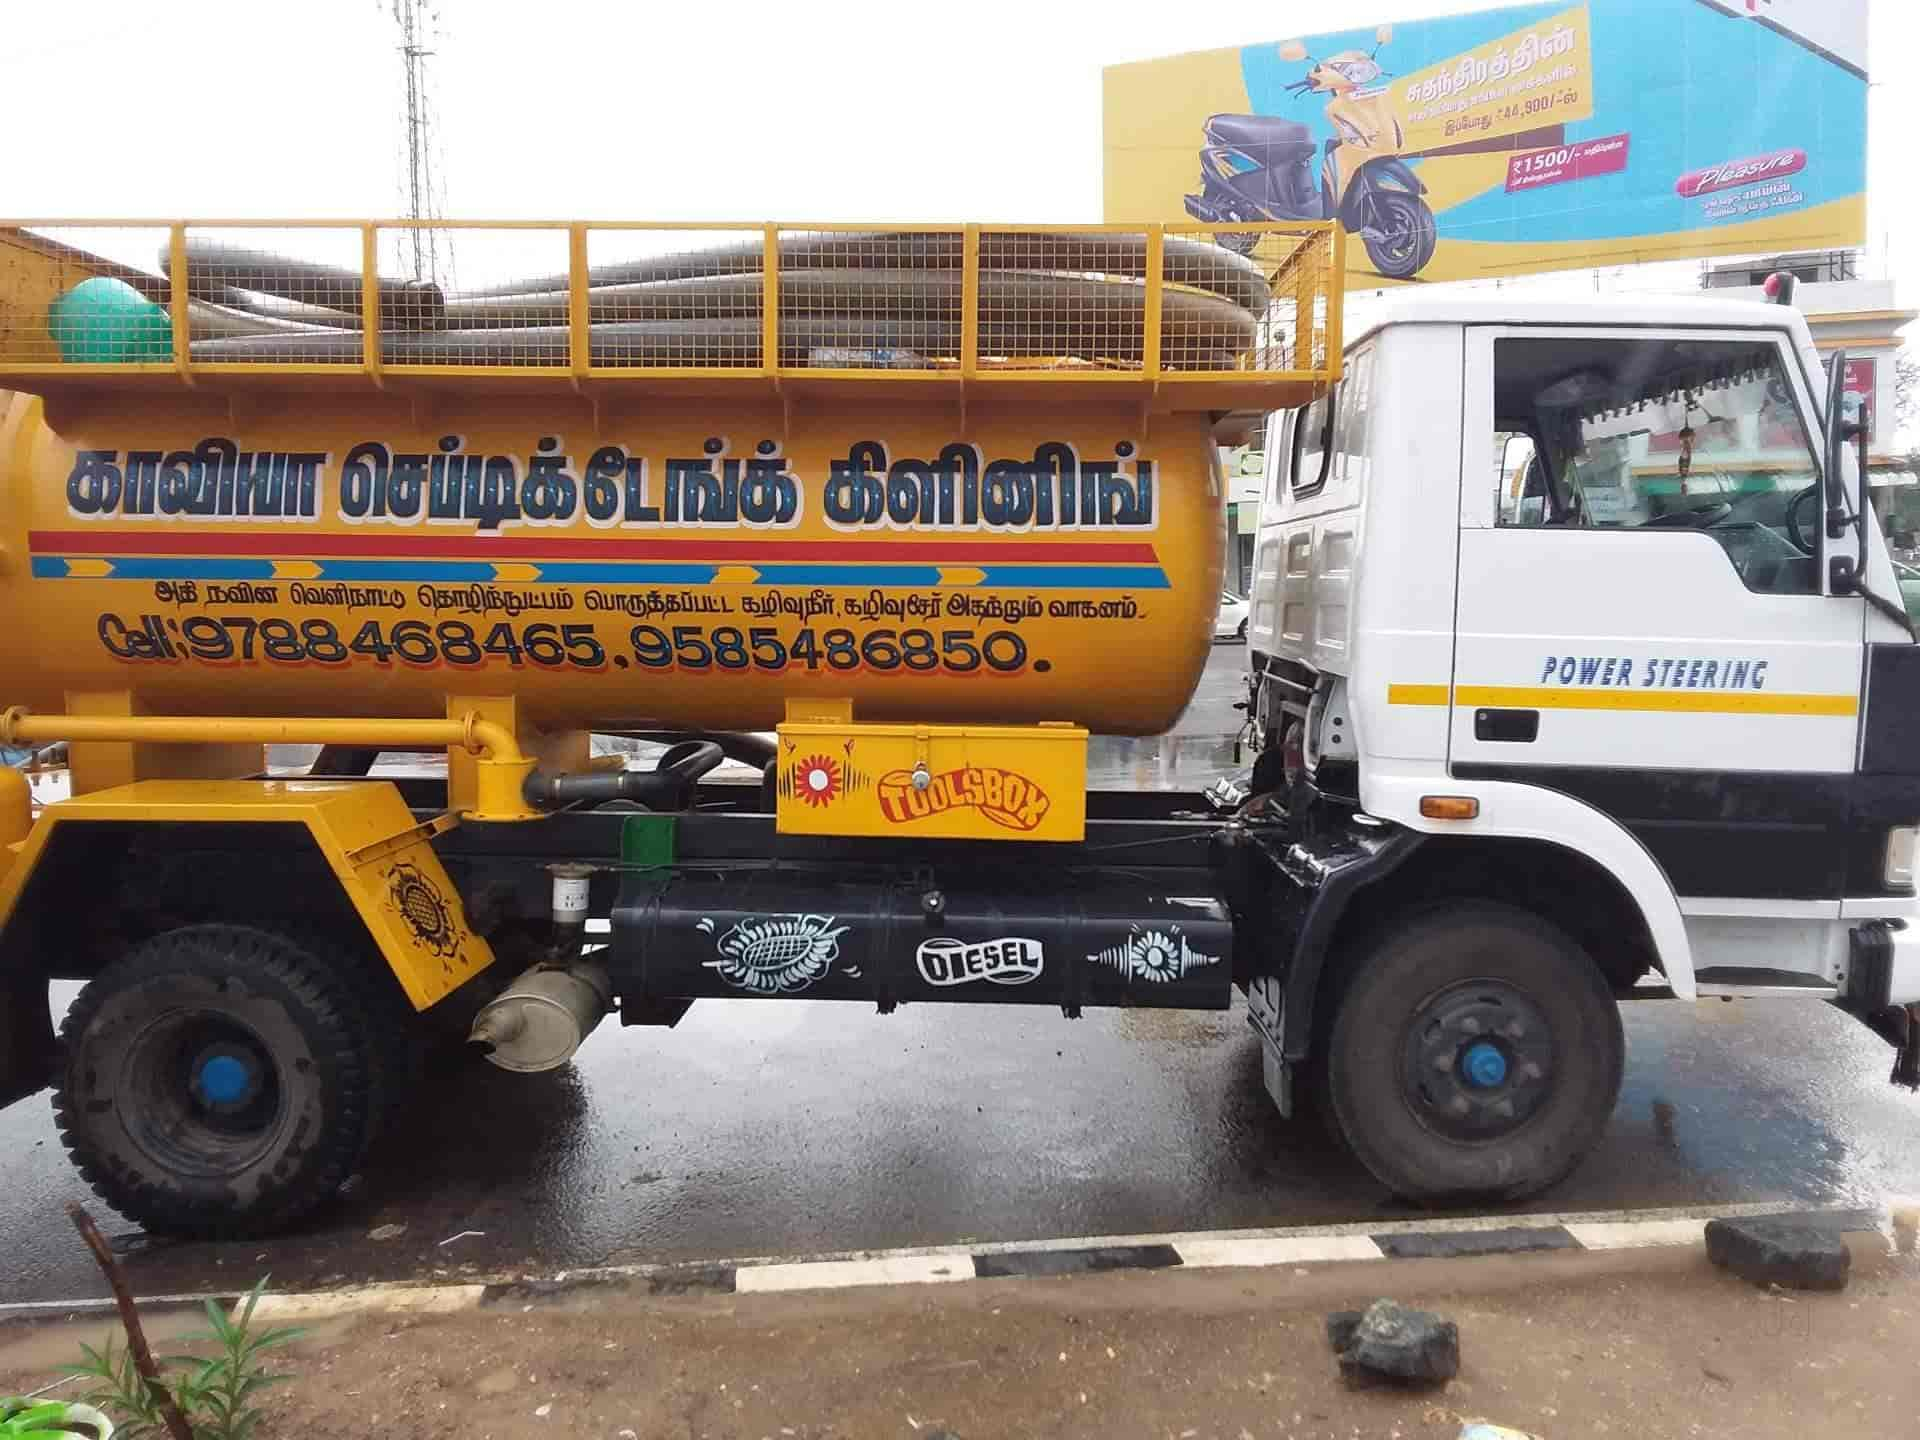 Kaviya Septic Tank Cleaning Services Photos, Jaihindpuram